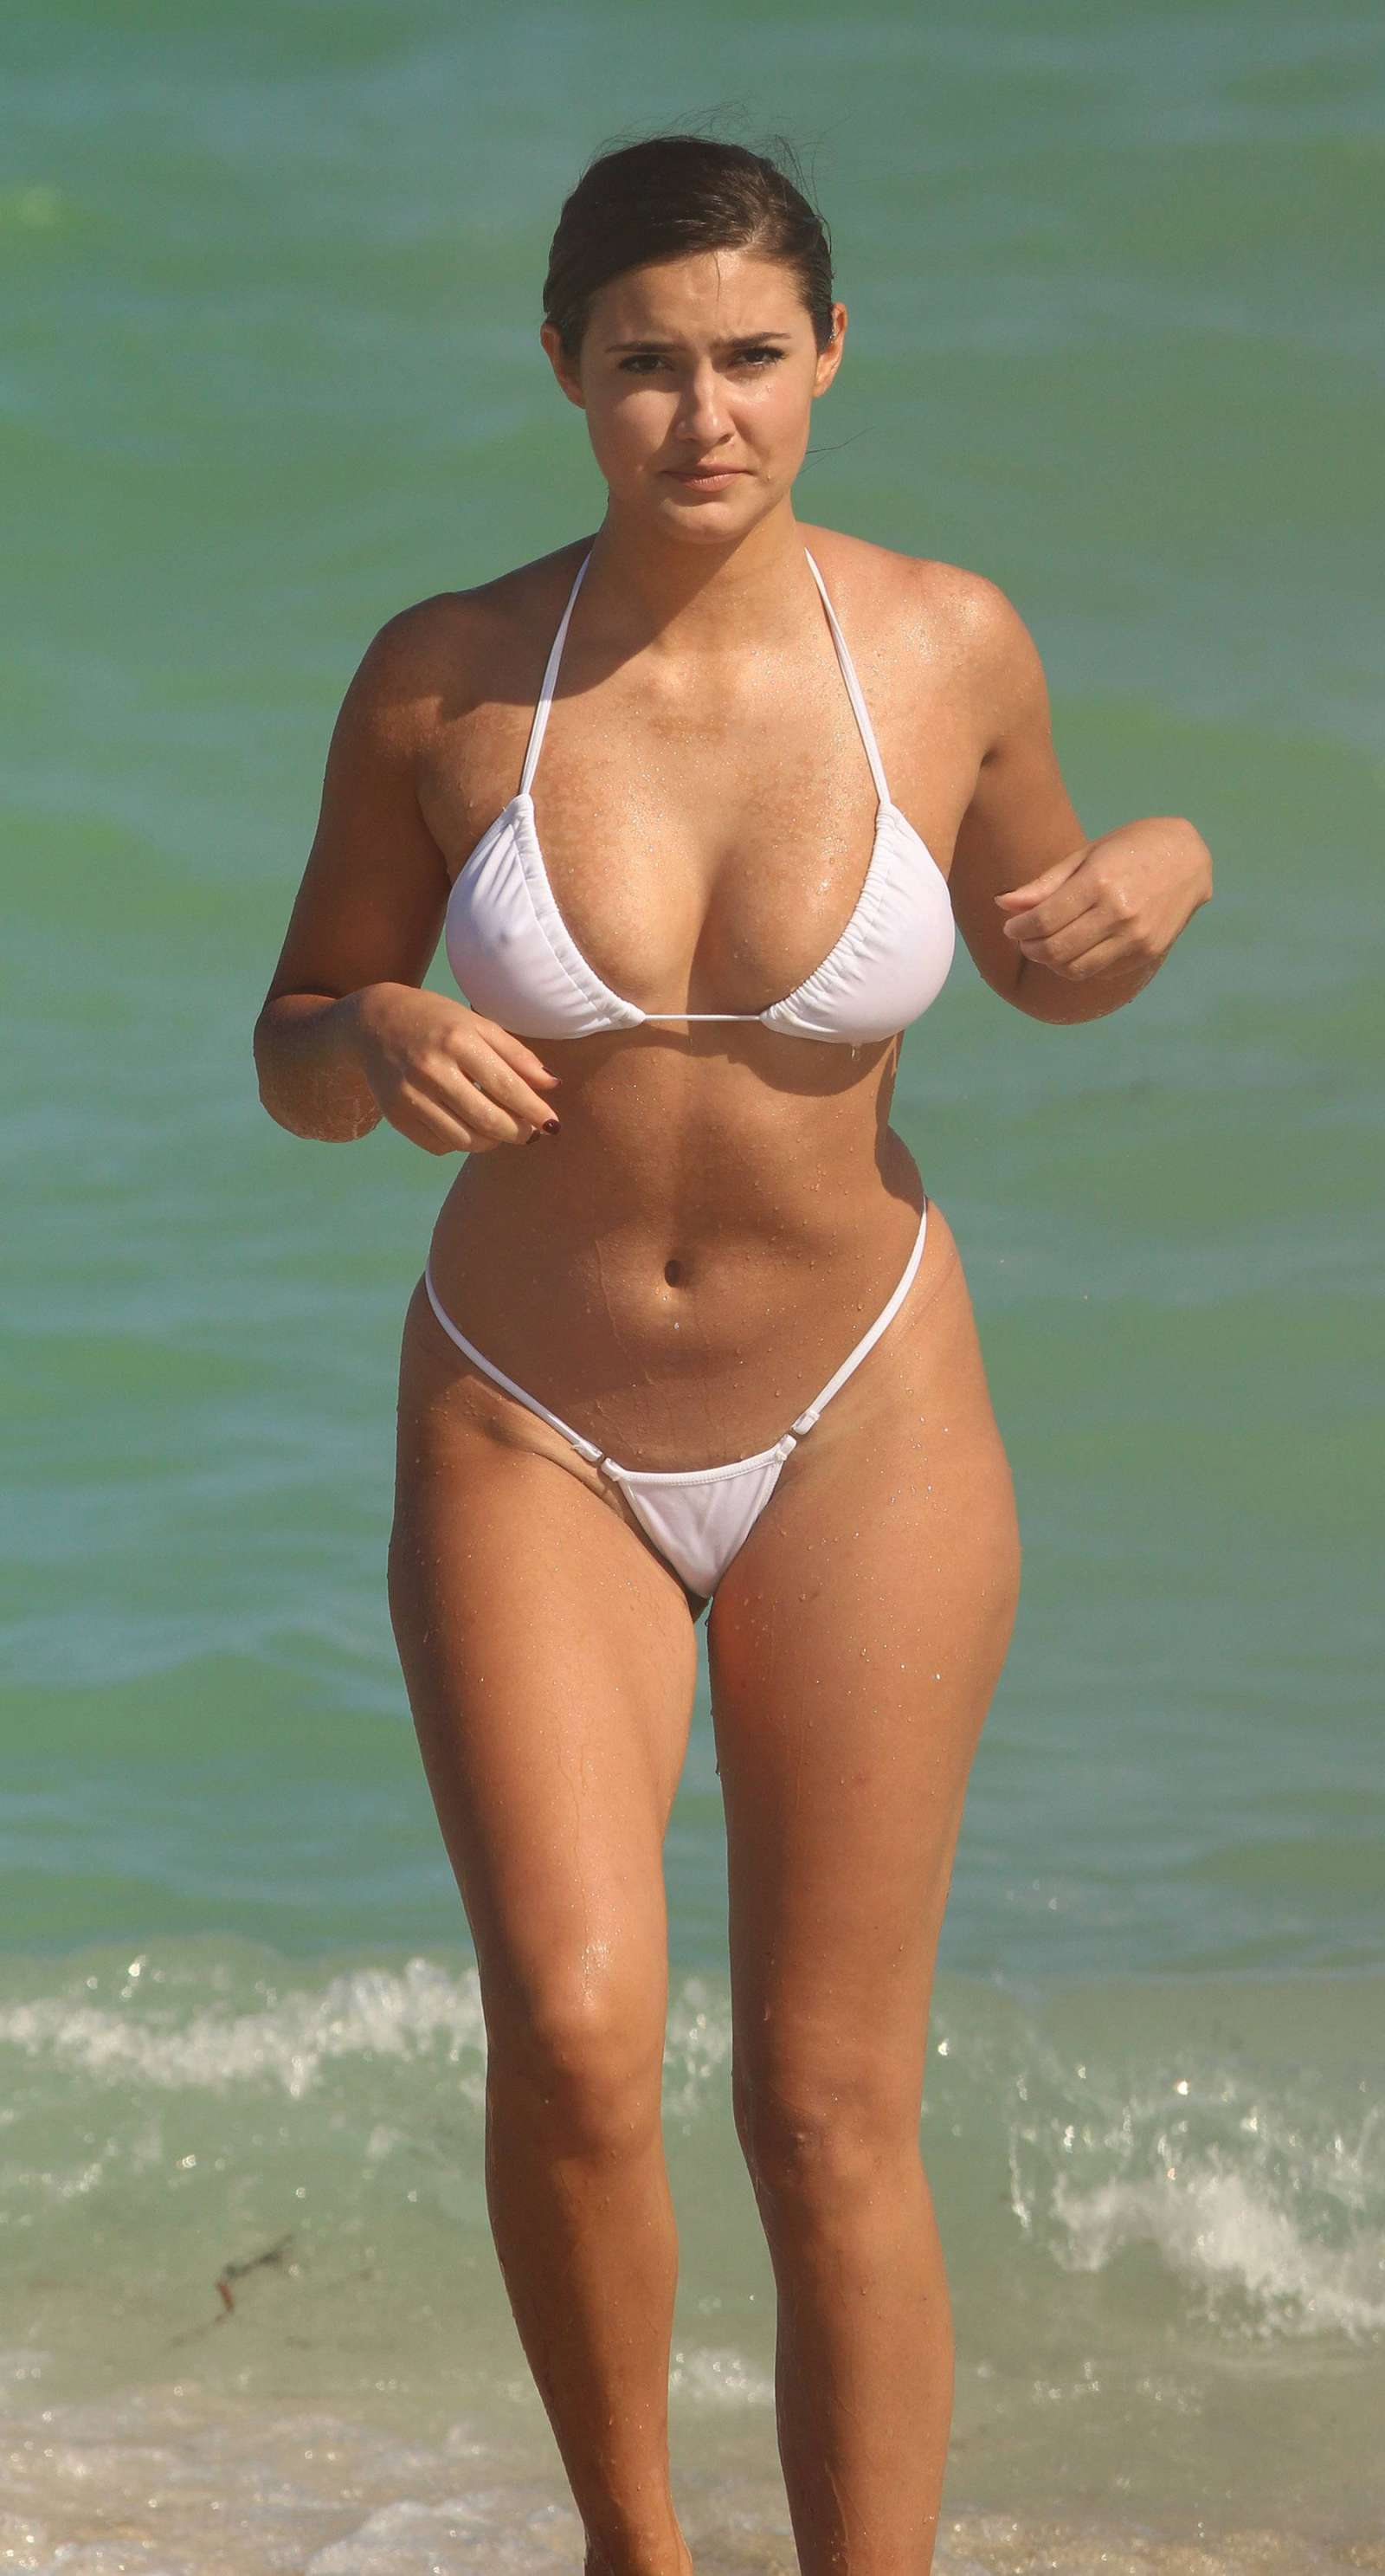 Tao Wickrath in White Bikini on Miami Beach adds